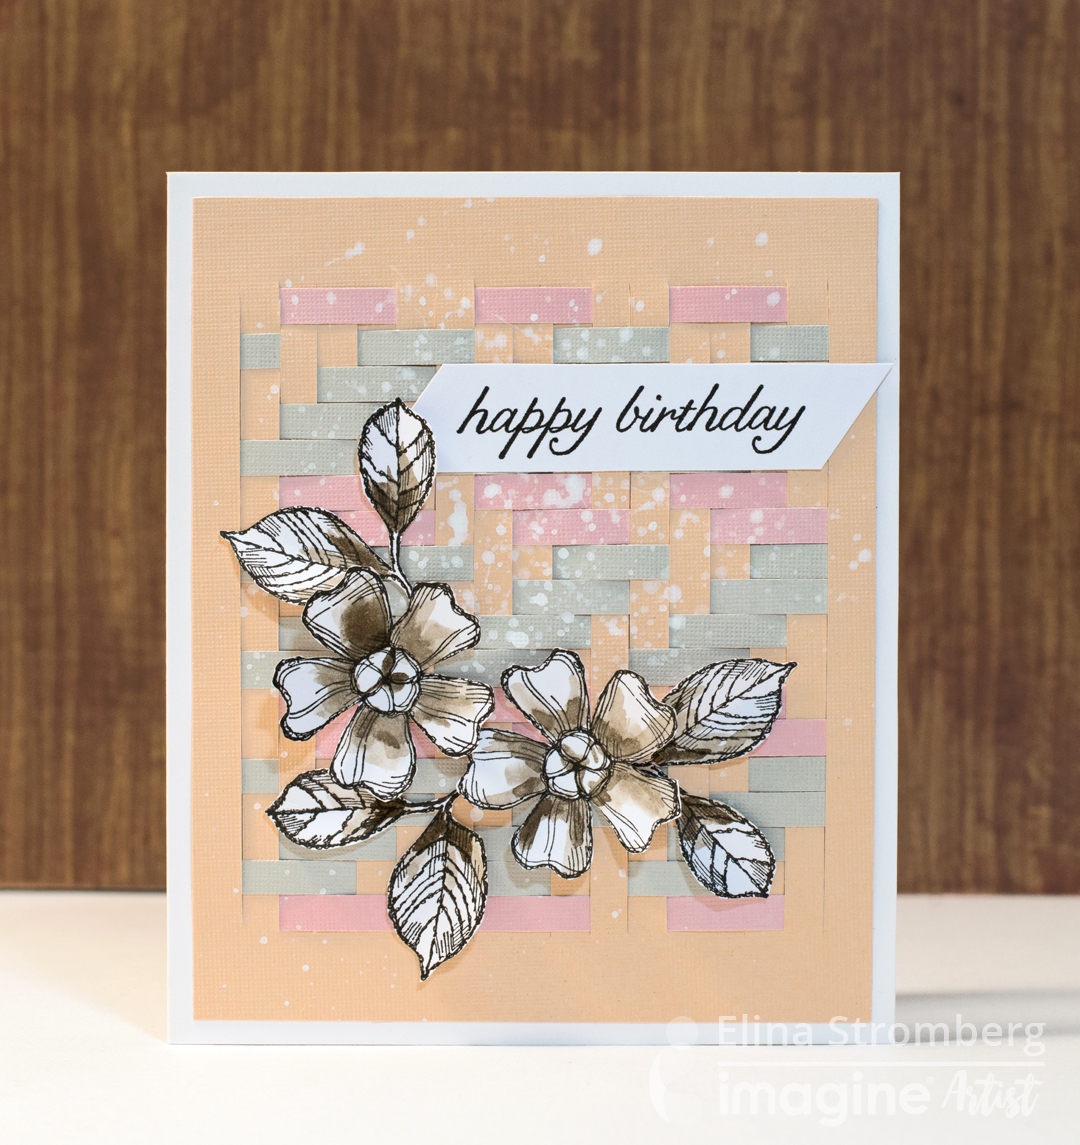 Elinas Arts And Crafts Paper Weaving On A Birthday Card